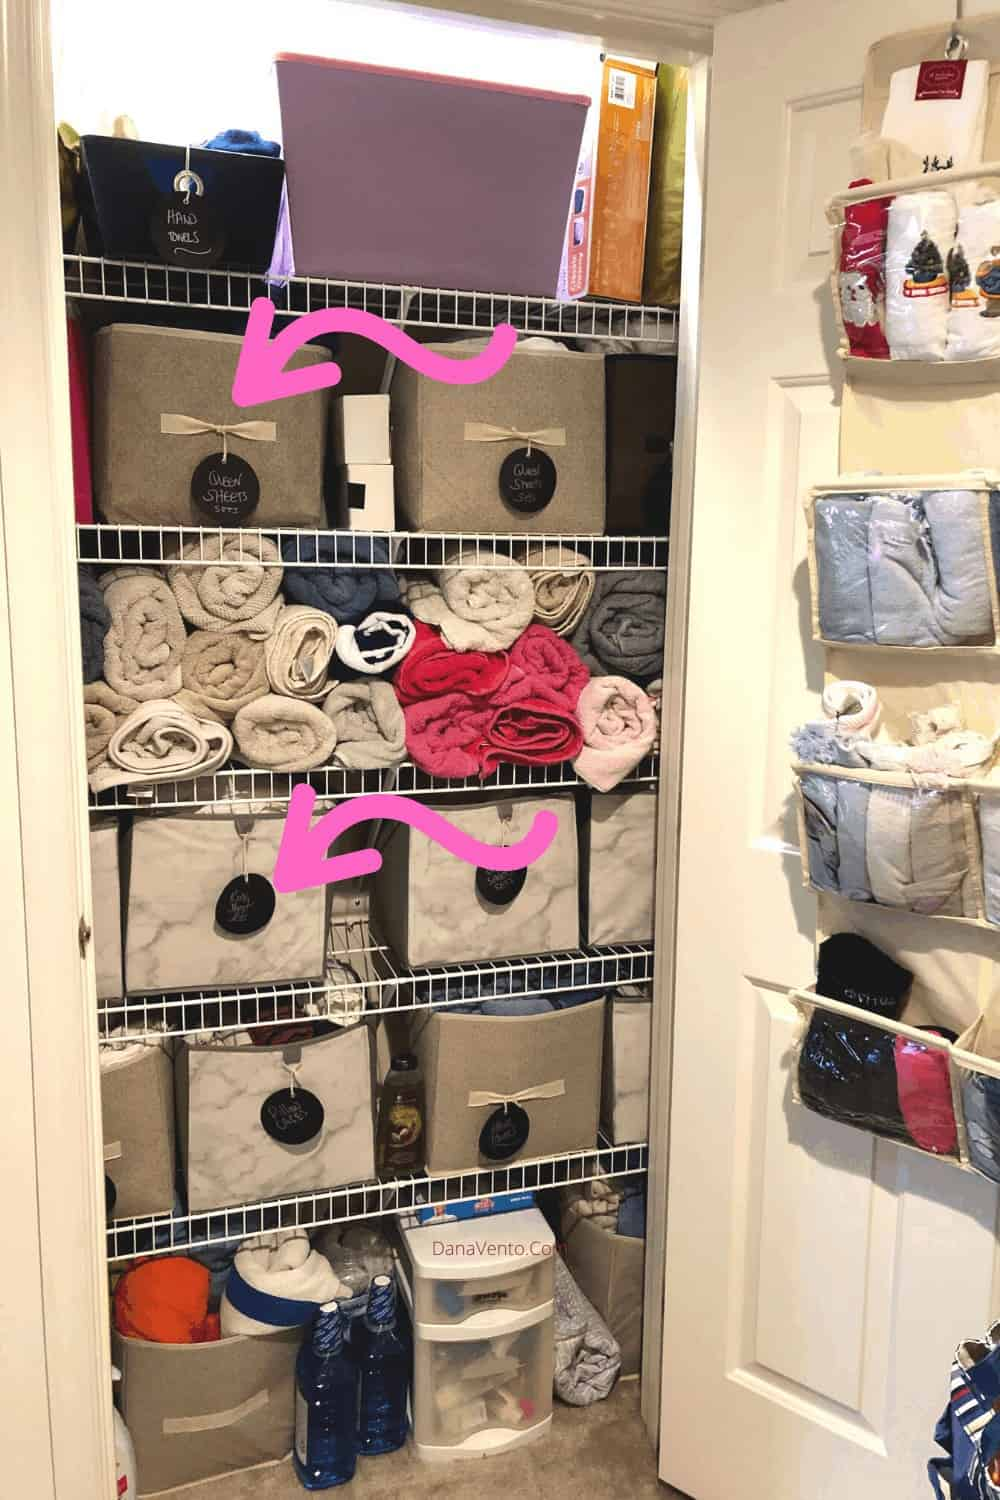 Tags on Cubes in Linen Closet